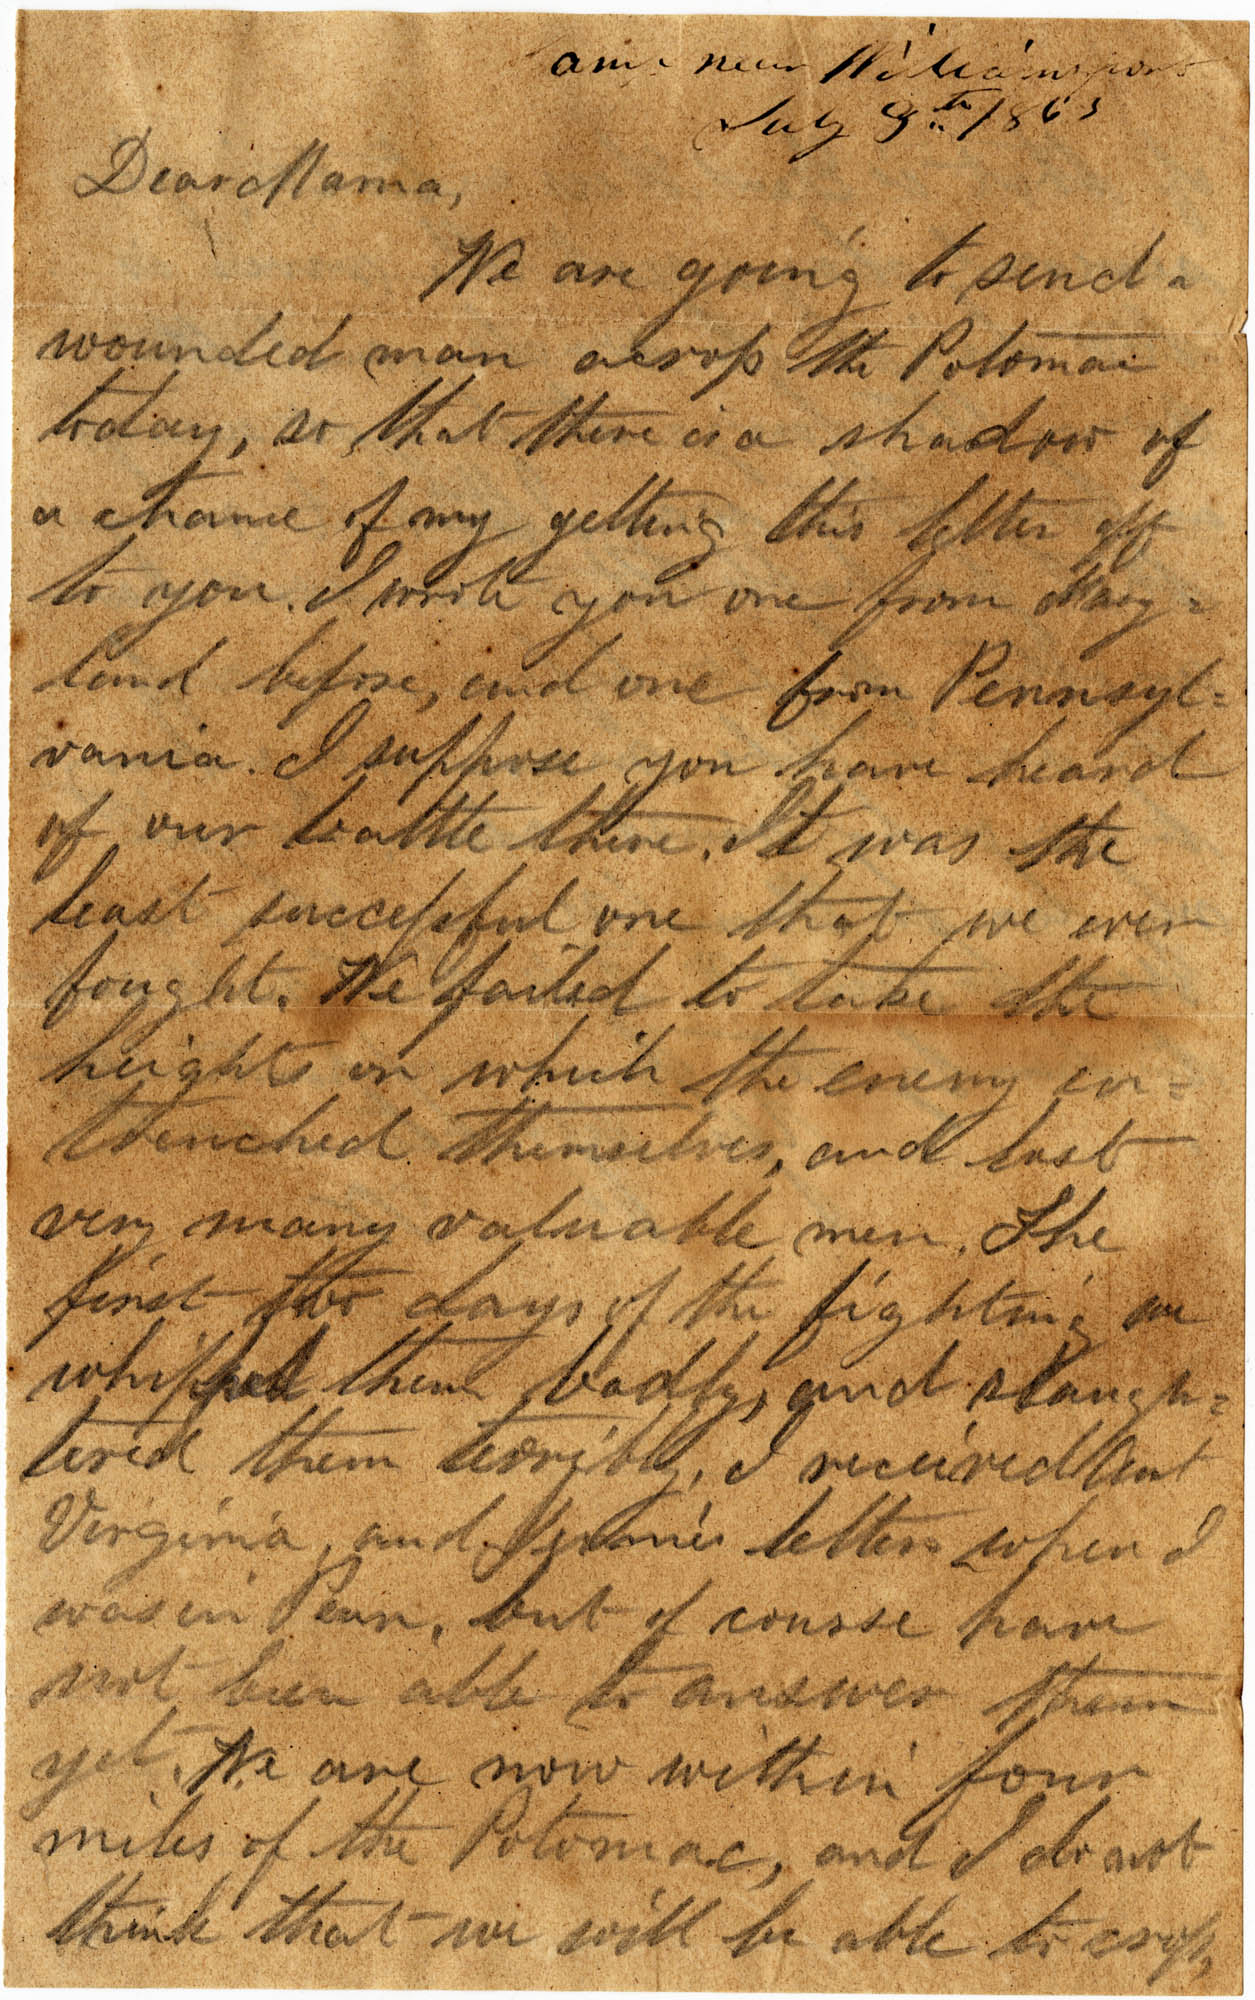 089. Willis Keith to Anna Bell Keith -- July 9, 1863